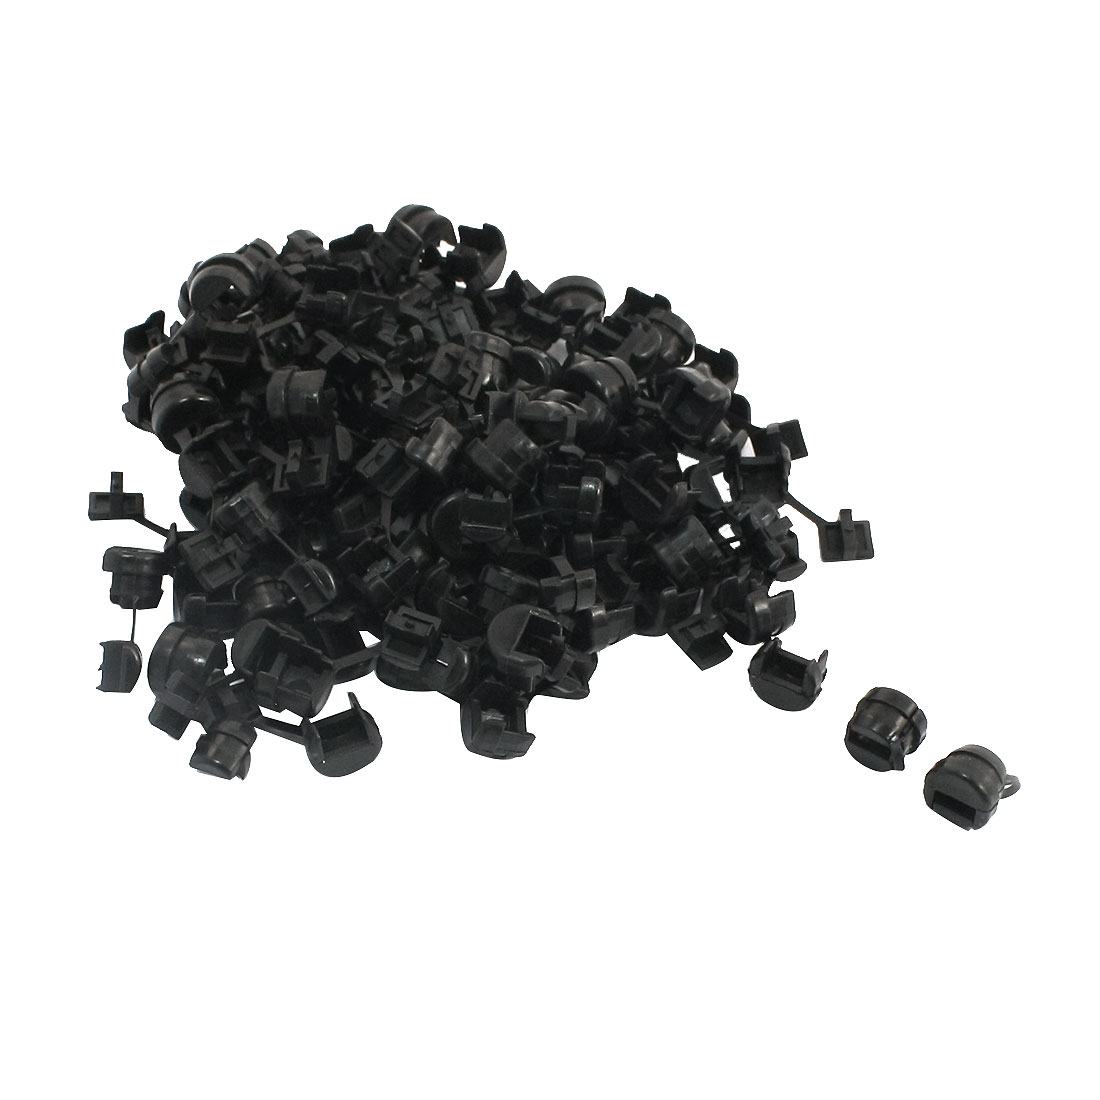 100 Pcs Wires Protectors Strain Relief Bushing for 7mm Width Flat Cables